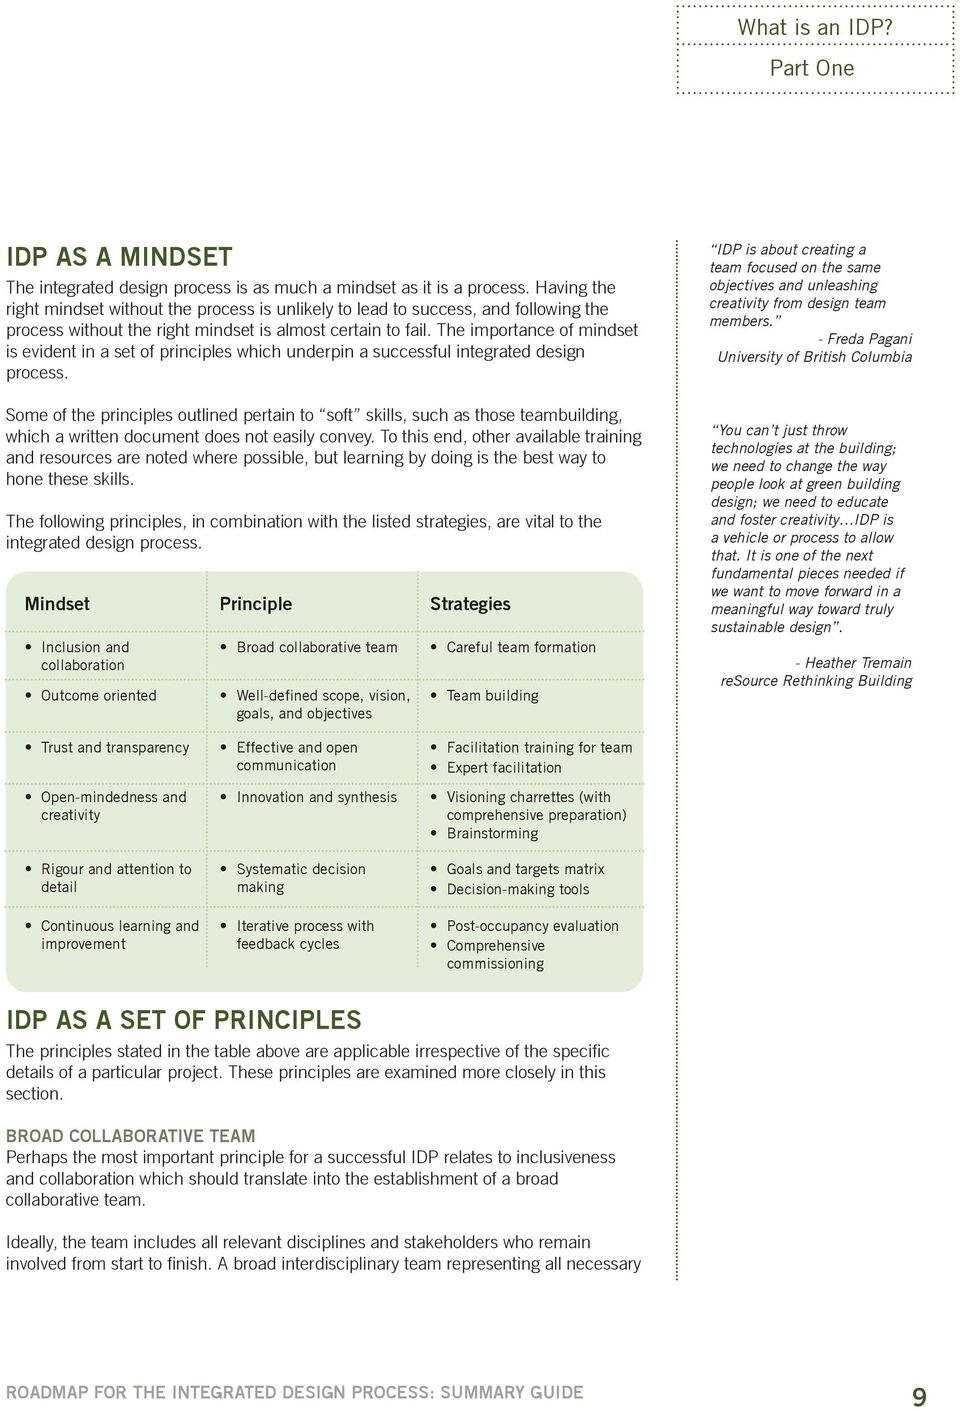 The importance of mindset is evident in a set of principles which underpin a successful integrated design process.